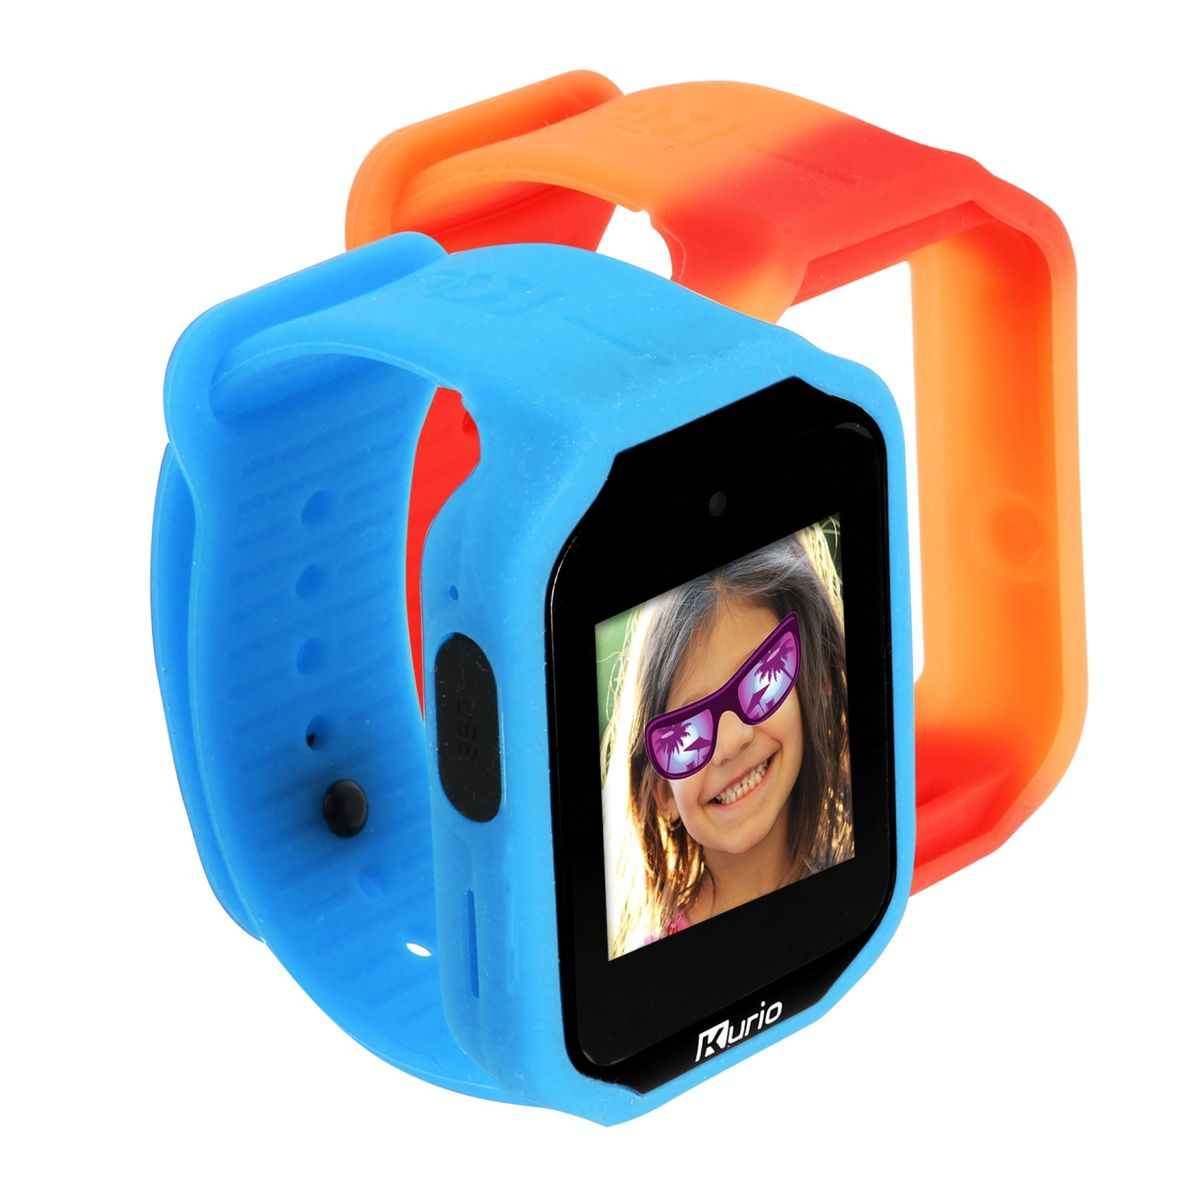 watch2.0_blueorange_resize.jpg